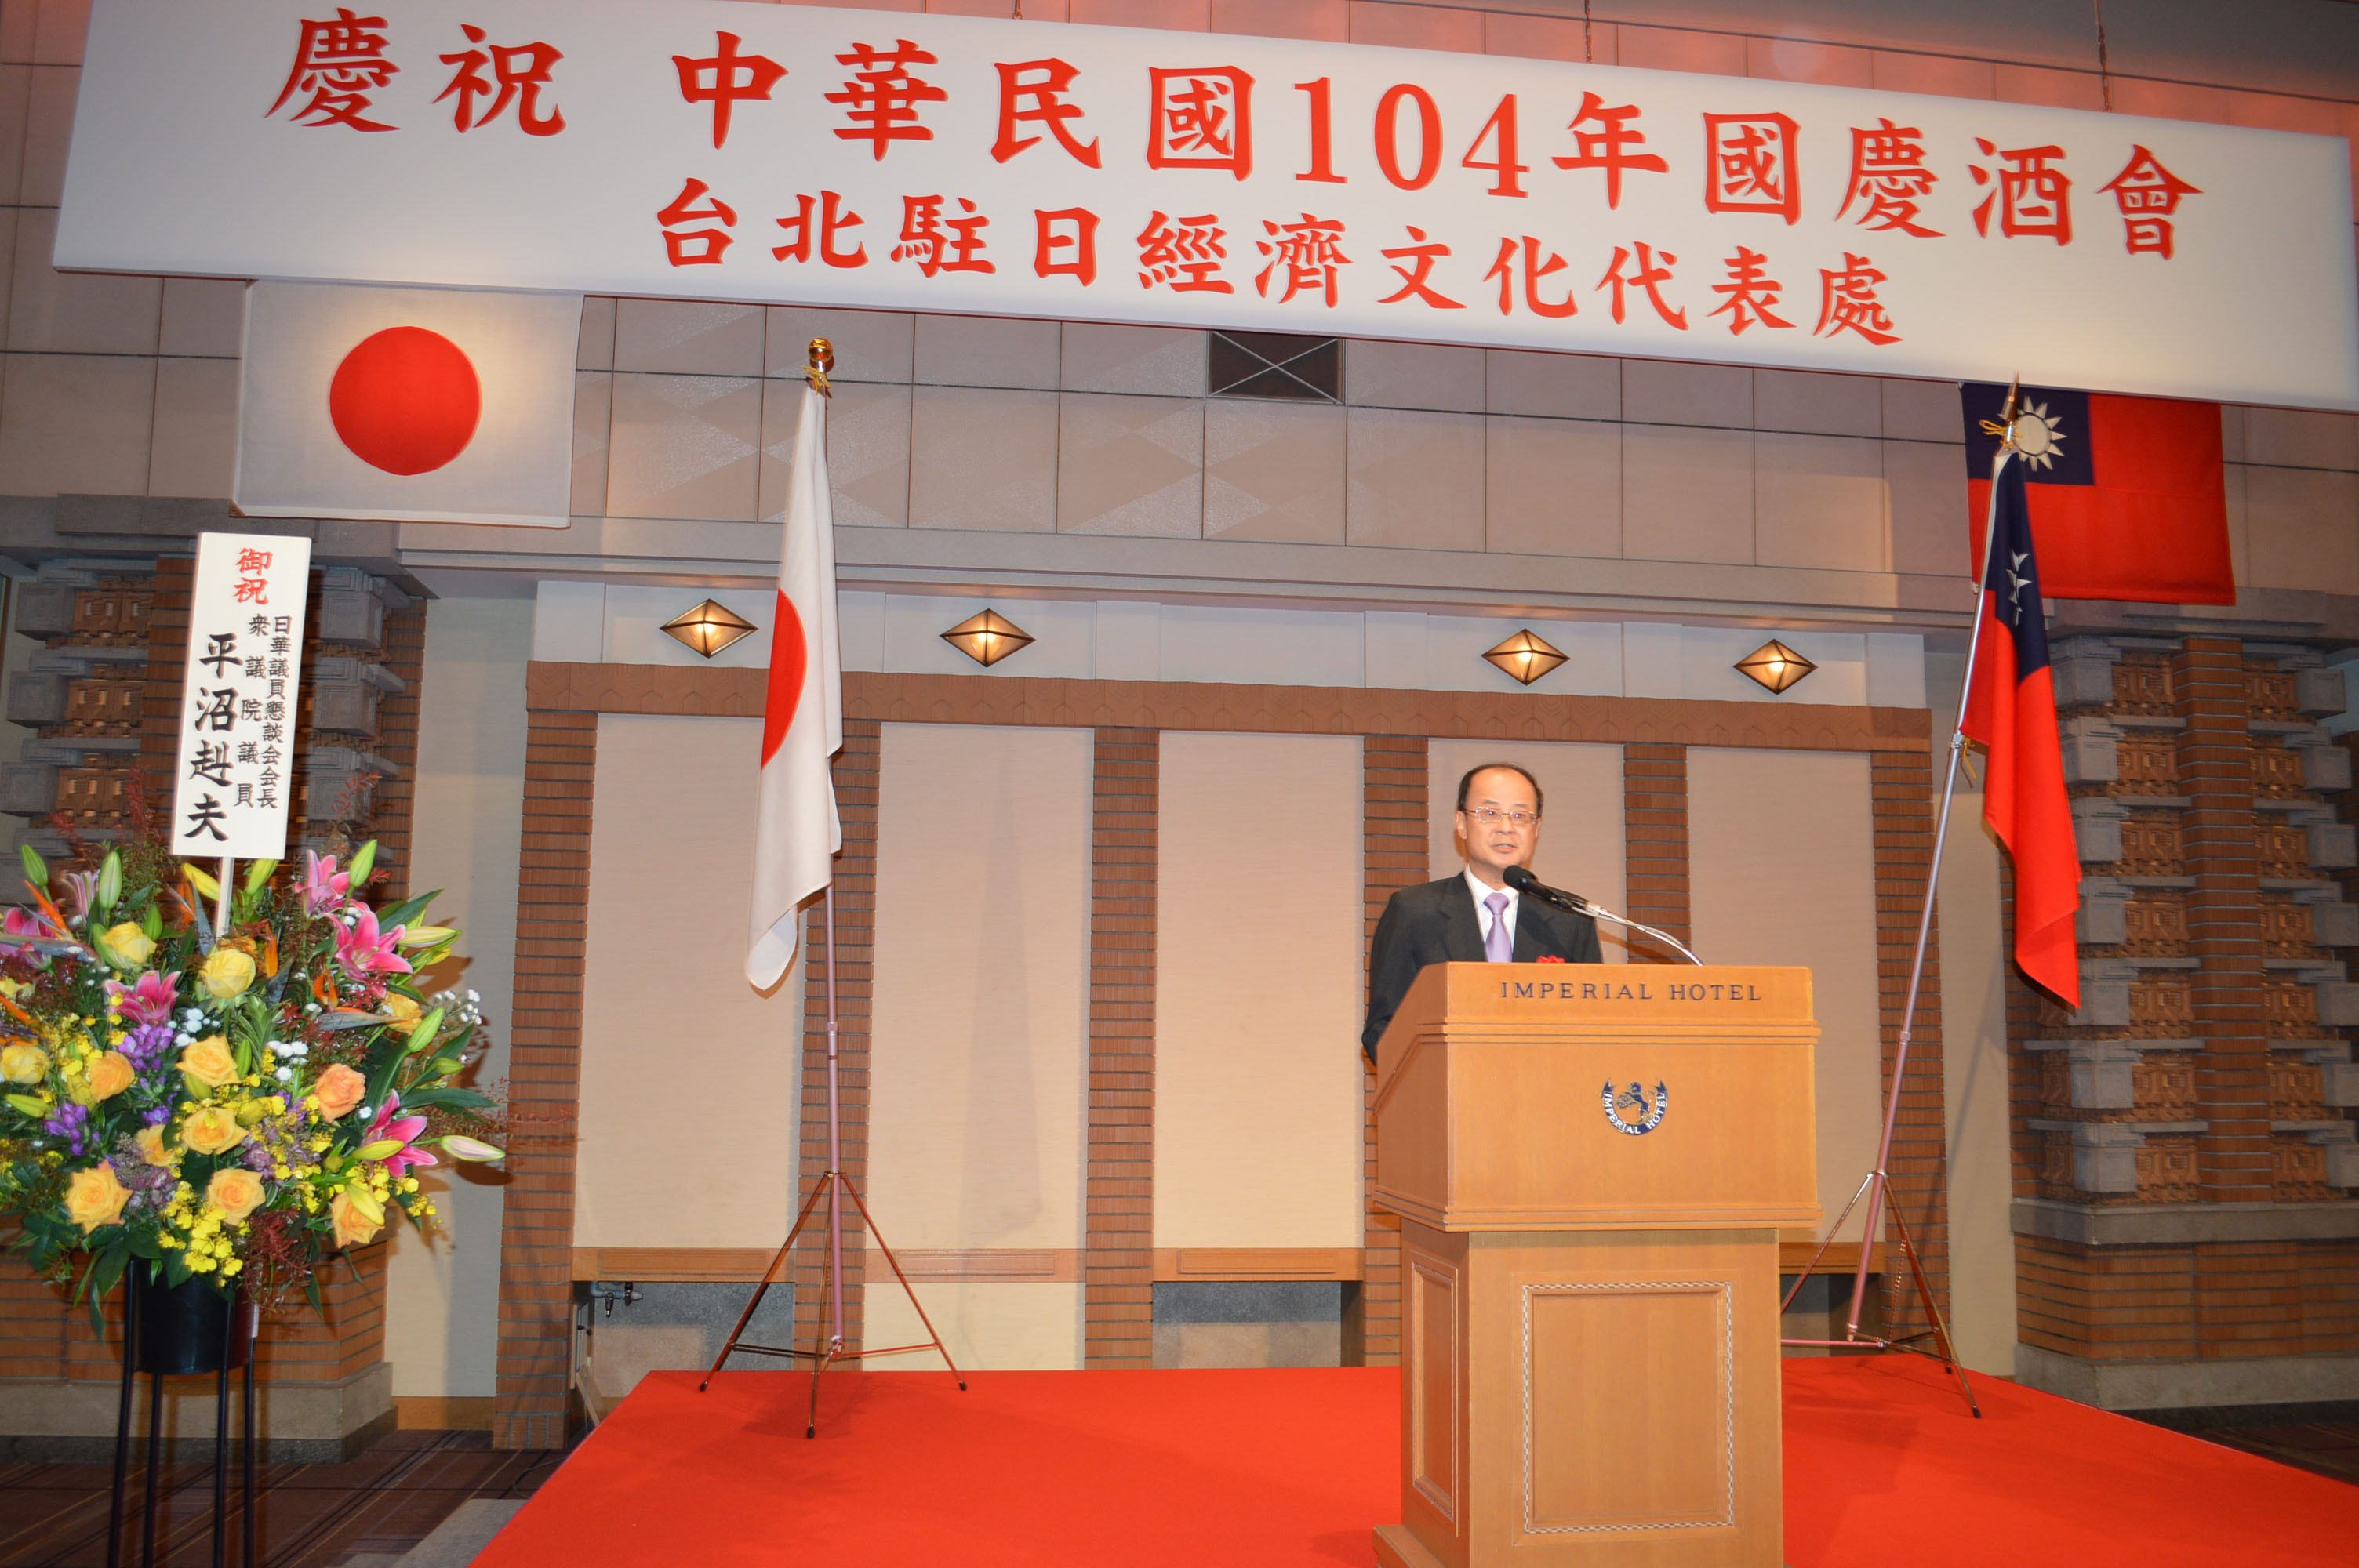 Shen Suu-tsun, representative of the Taipei Economic      and Cultural Representative Office in Japan, speaks at      a reception to celebrate Double Ten Day and the 104th anniversary of the Xinhai Revolution in Tokyo on Oct. 8.   THE TAIPEI ECONOMIC AND CULTURAL REPRESENTATIVE OFFICE IN JAPAN